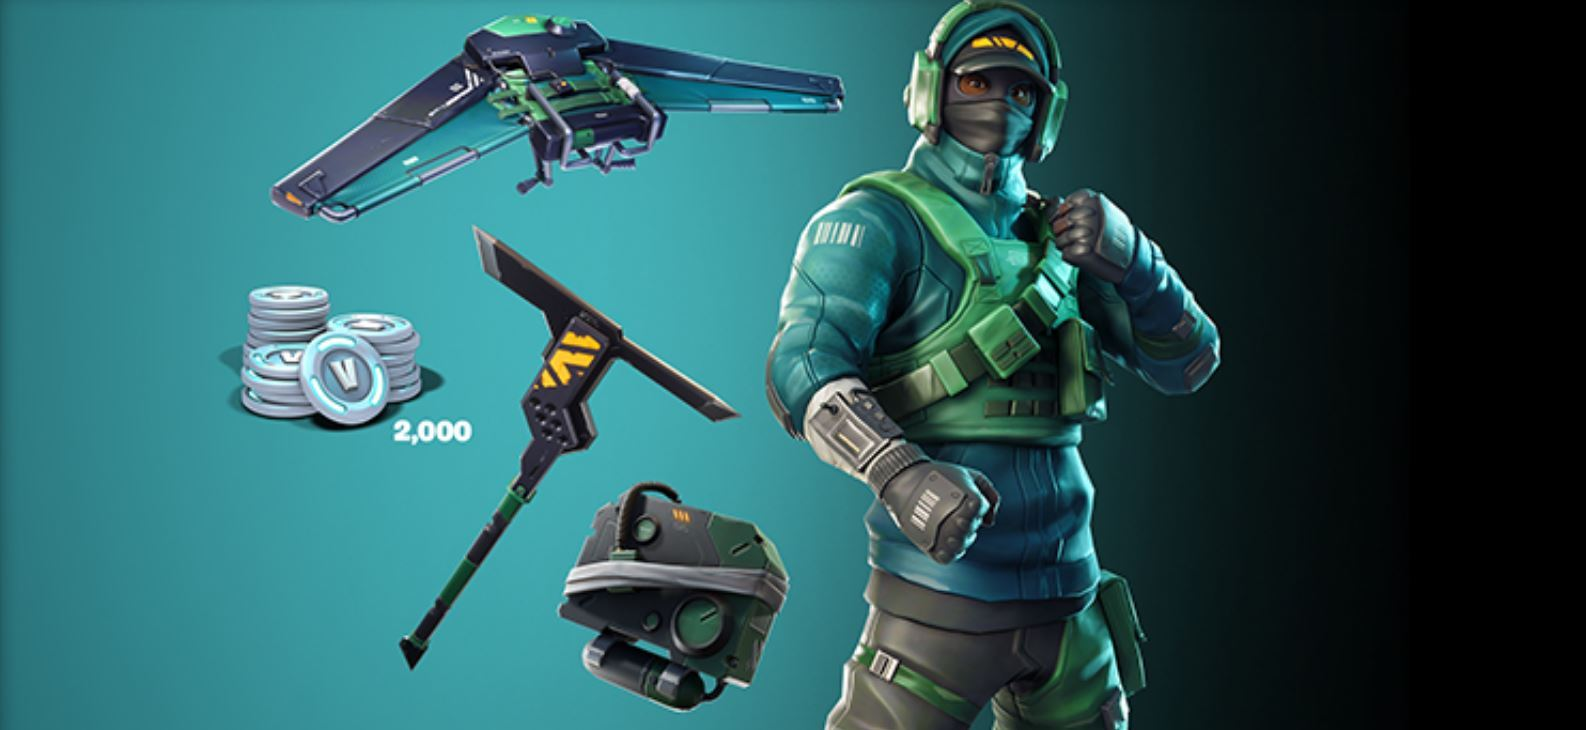 sell fortnite items for cryptocurrency